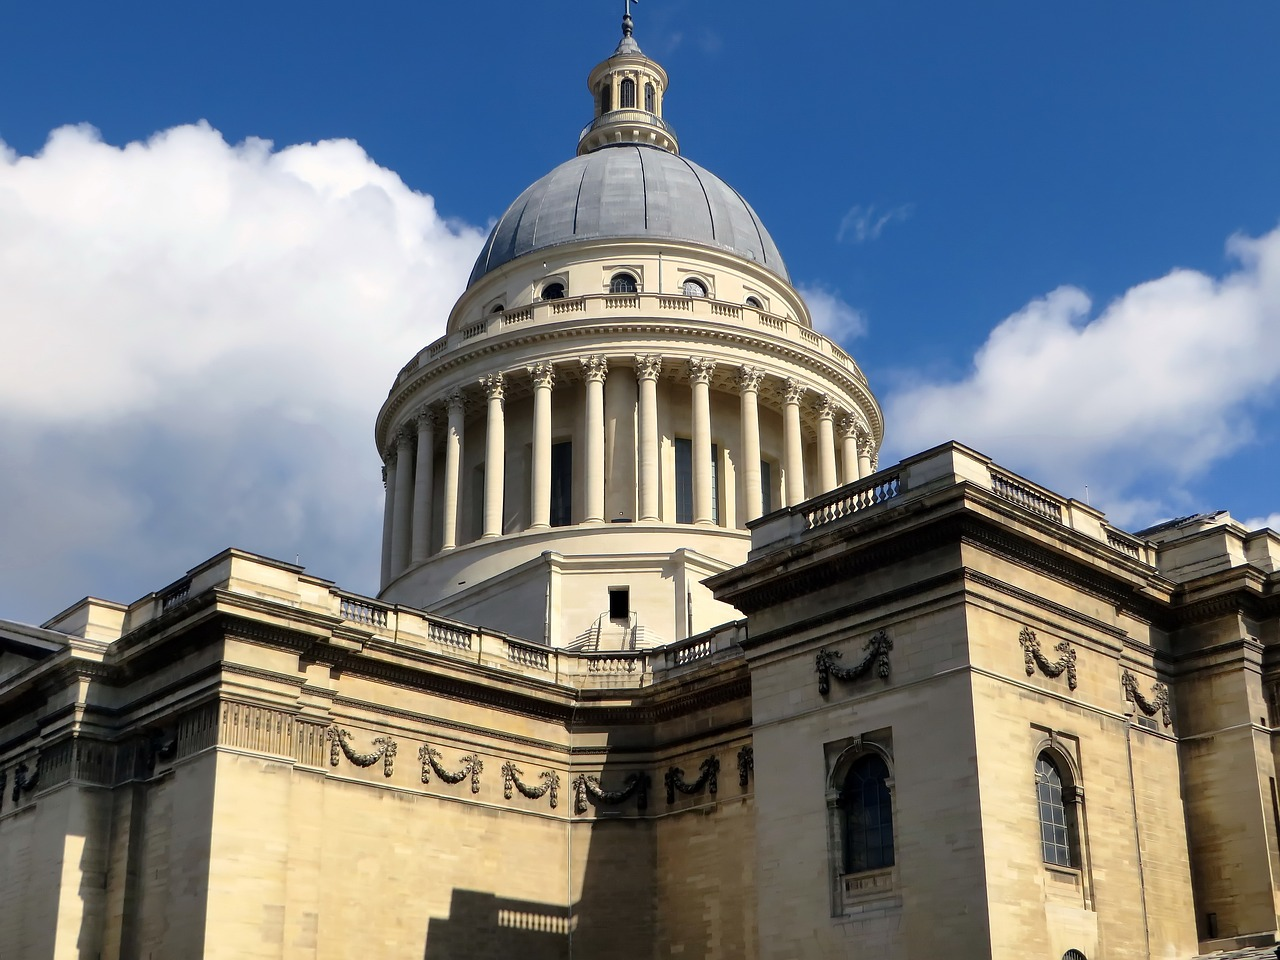 The Paris Pantheon viewed from outside